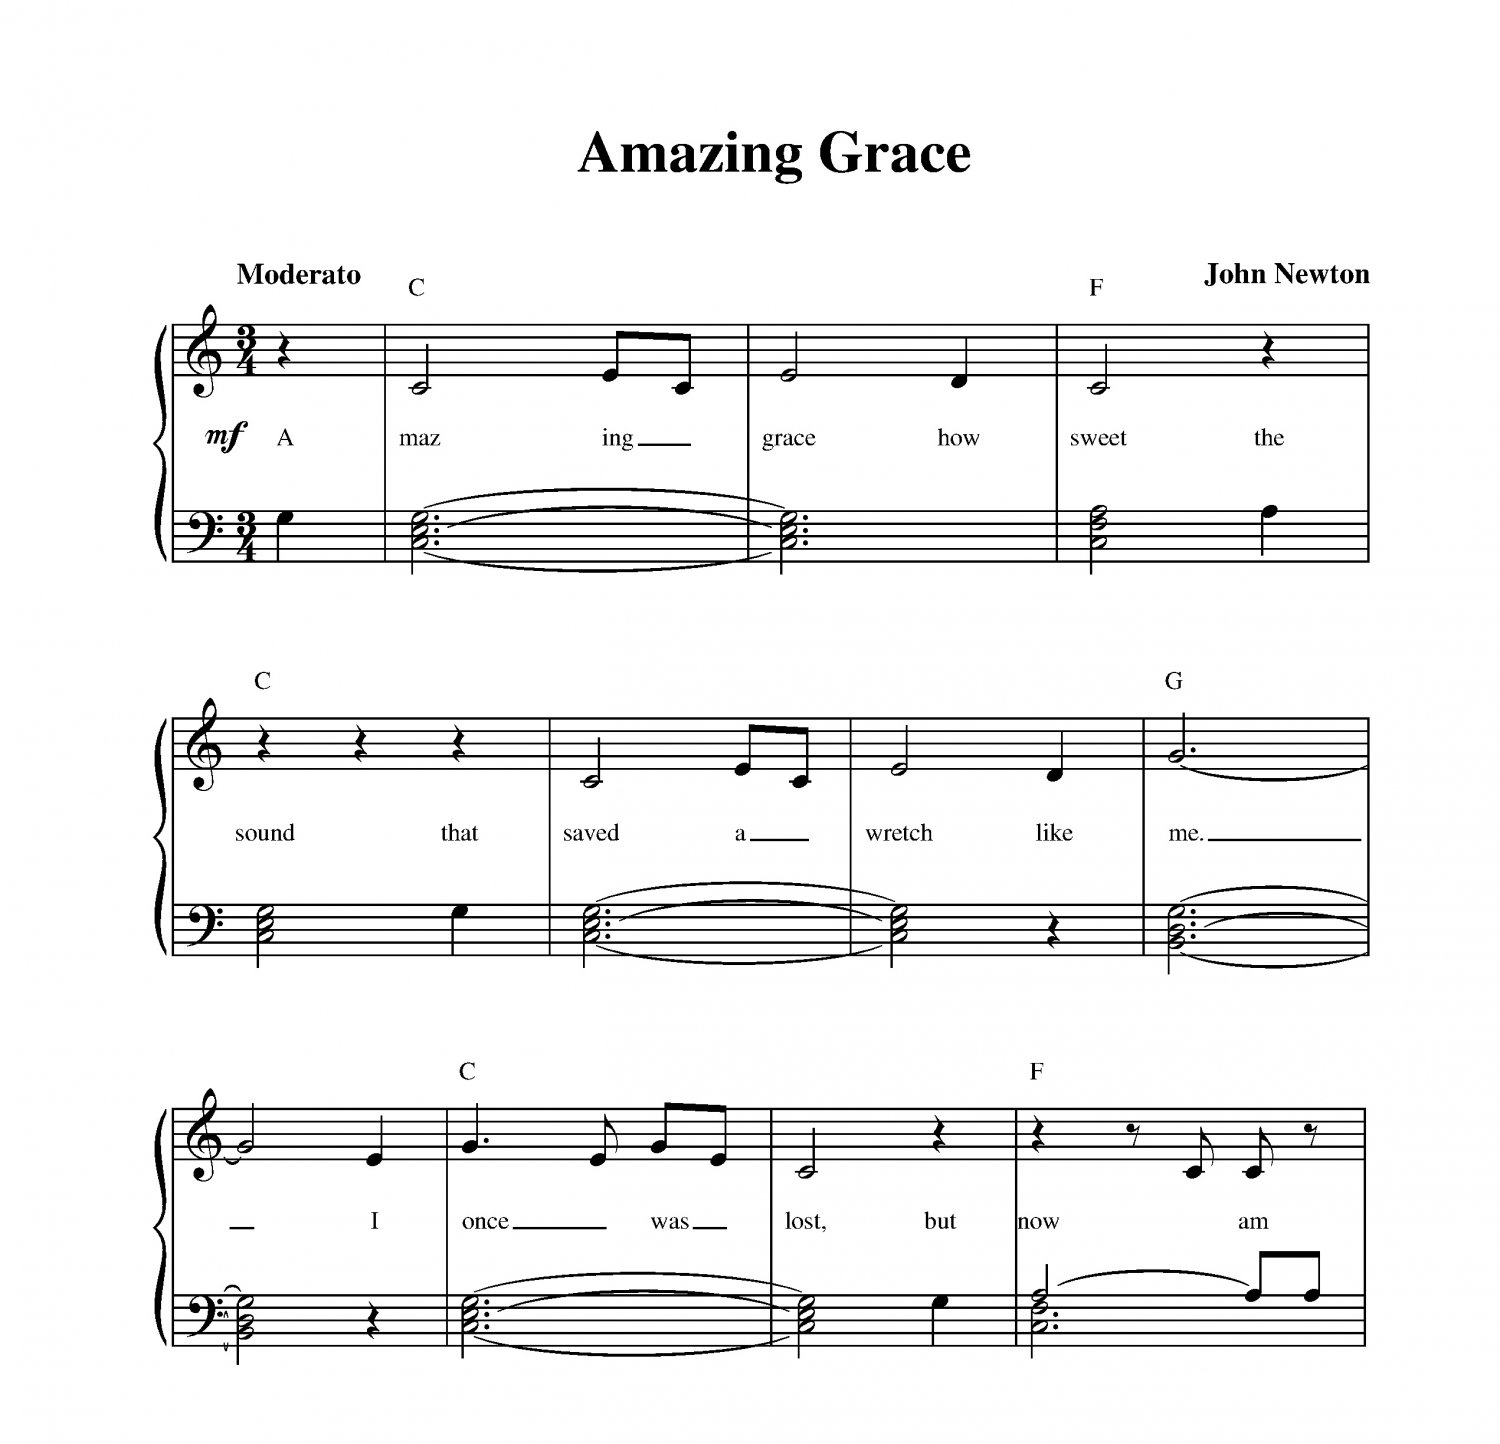 Amazing Grace Free Piano Sheet Music With Lyrics: Amazing Grace